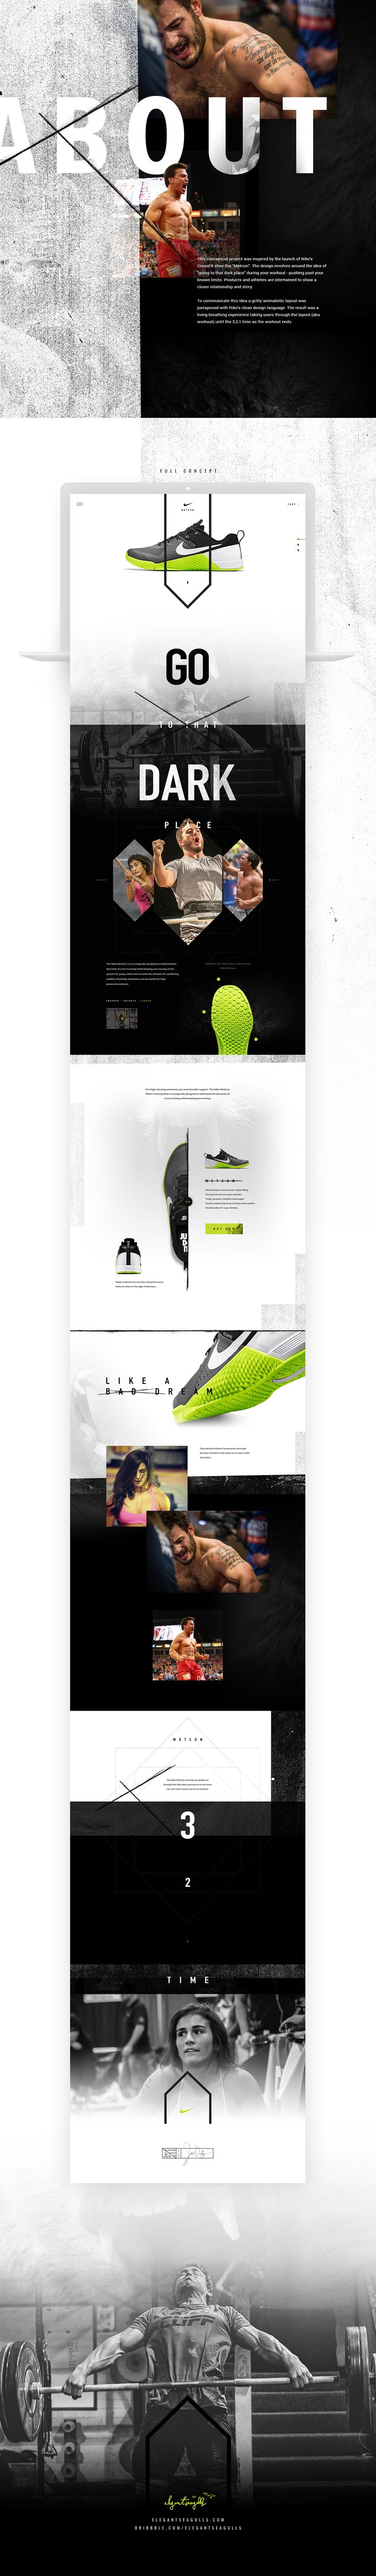 """This conceptual project was inspired by the launch of Nike's CrossFit shoe the """"Metcon"""". The design revolves around the idea of """"going to that dark place"""" during your workout - pushing past your known limits."""